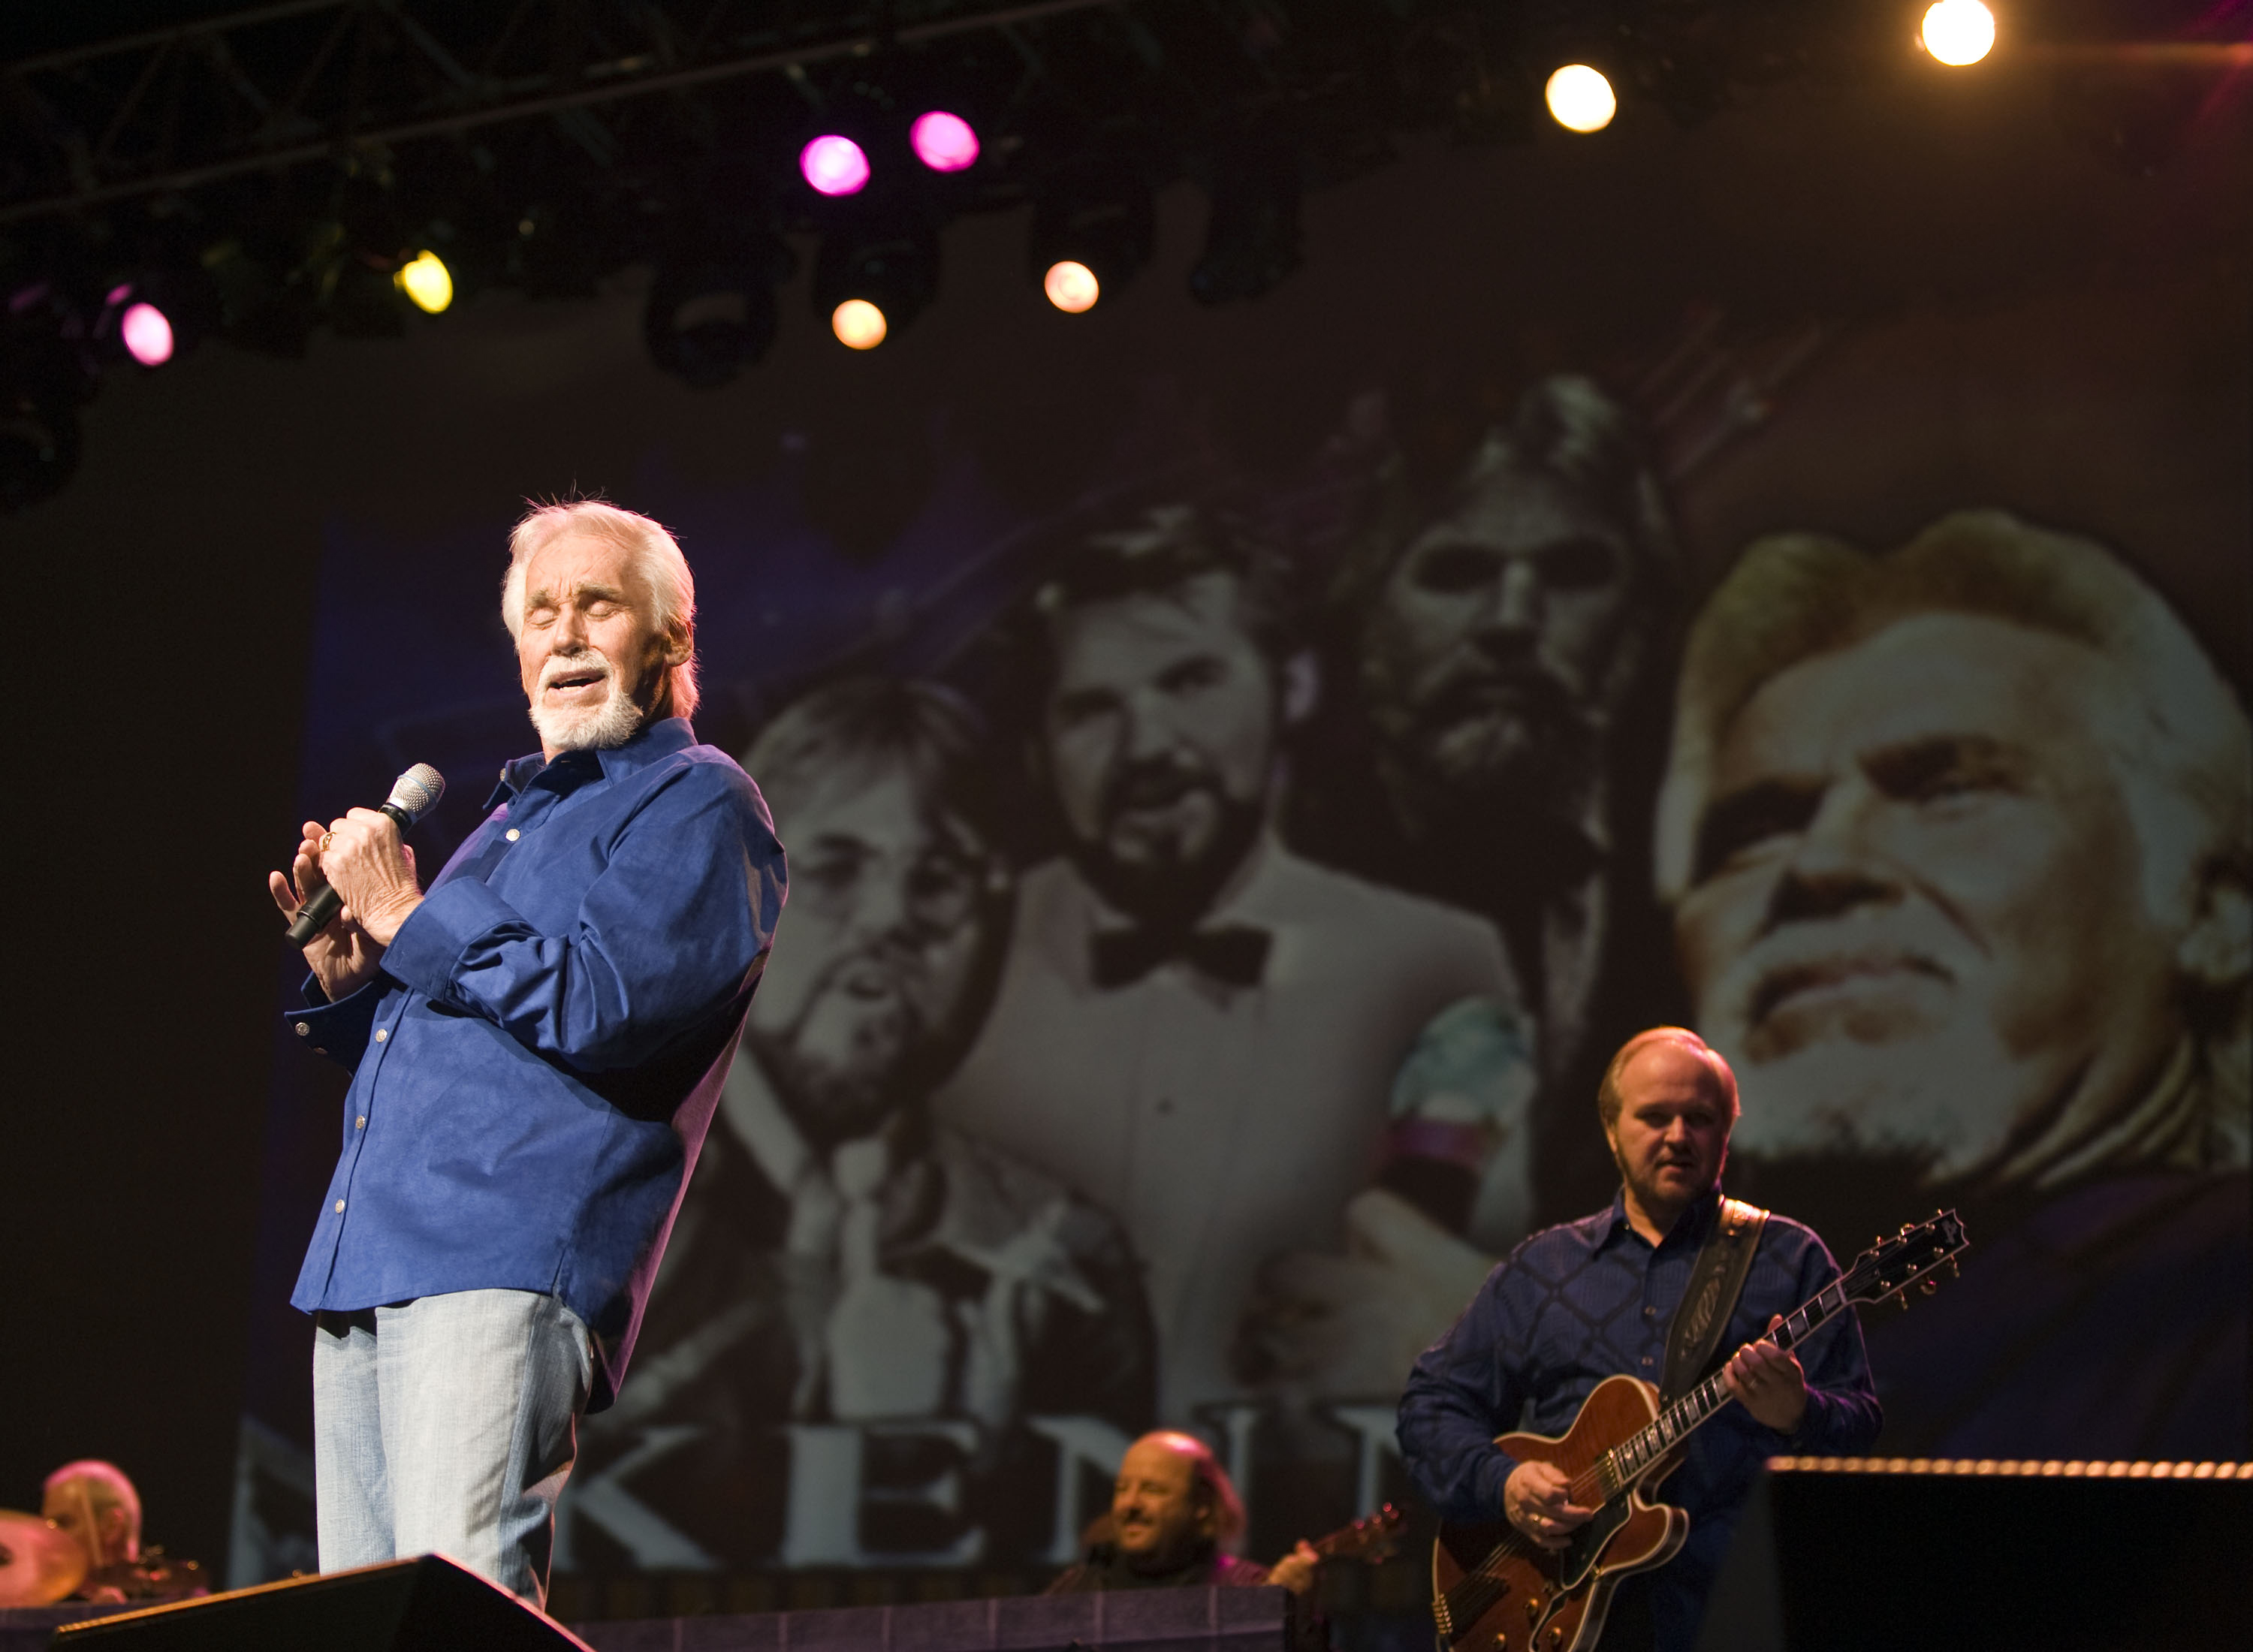 Kenny Rogers performs in Birmingham, England in 2009 - Kenny Rogers Retrospective